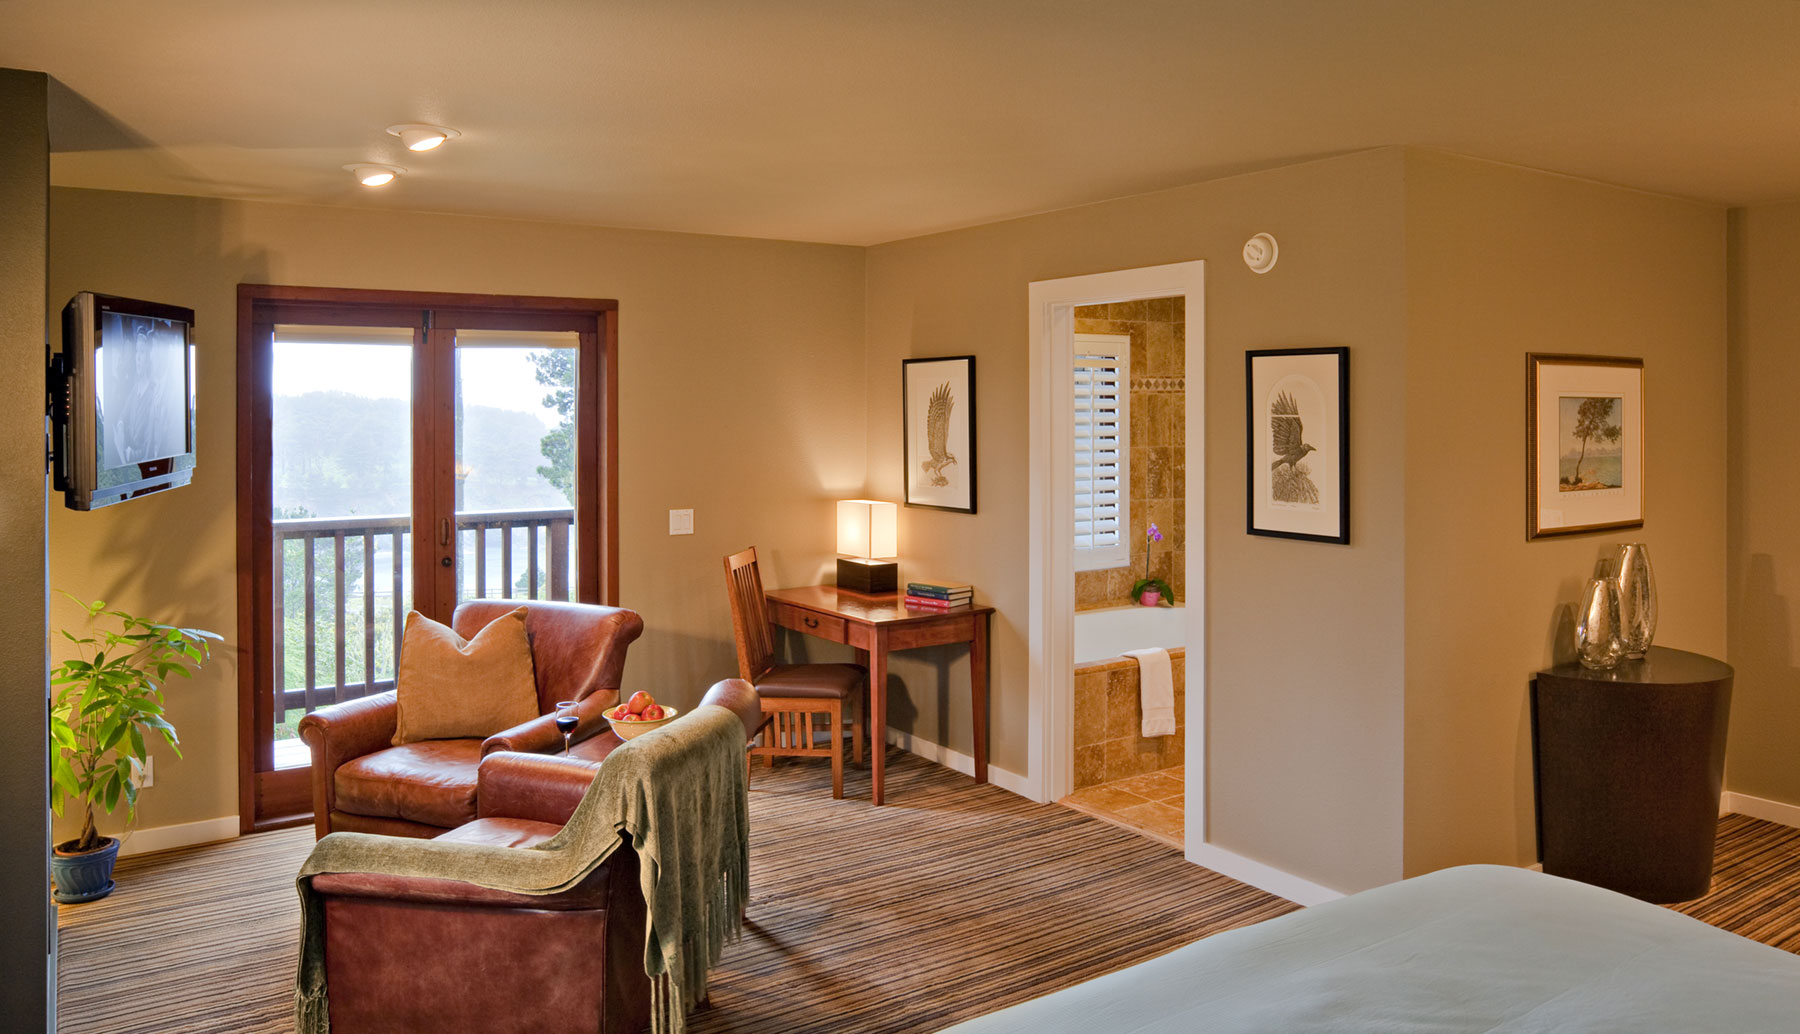 The Osprey room with French doors onto private blacony, leather seating in front of flat screen TV